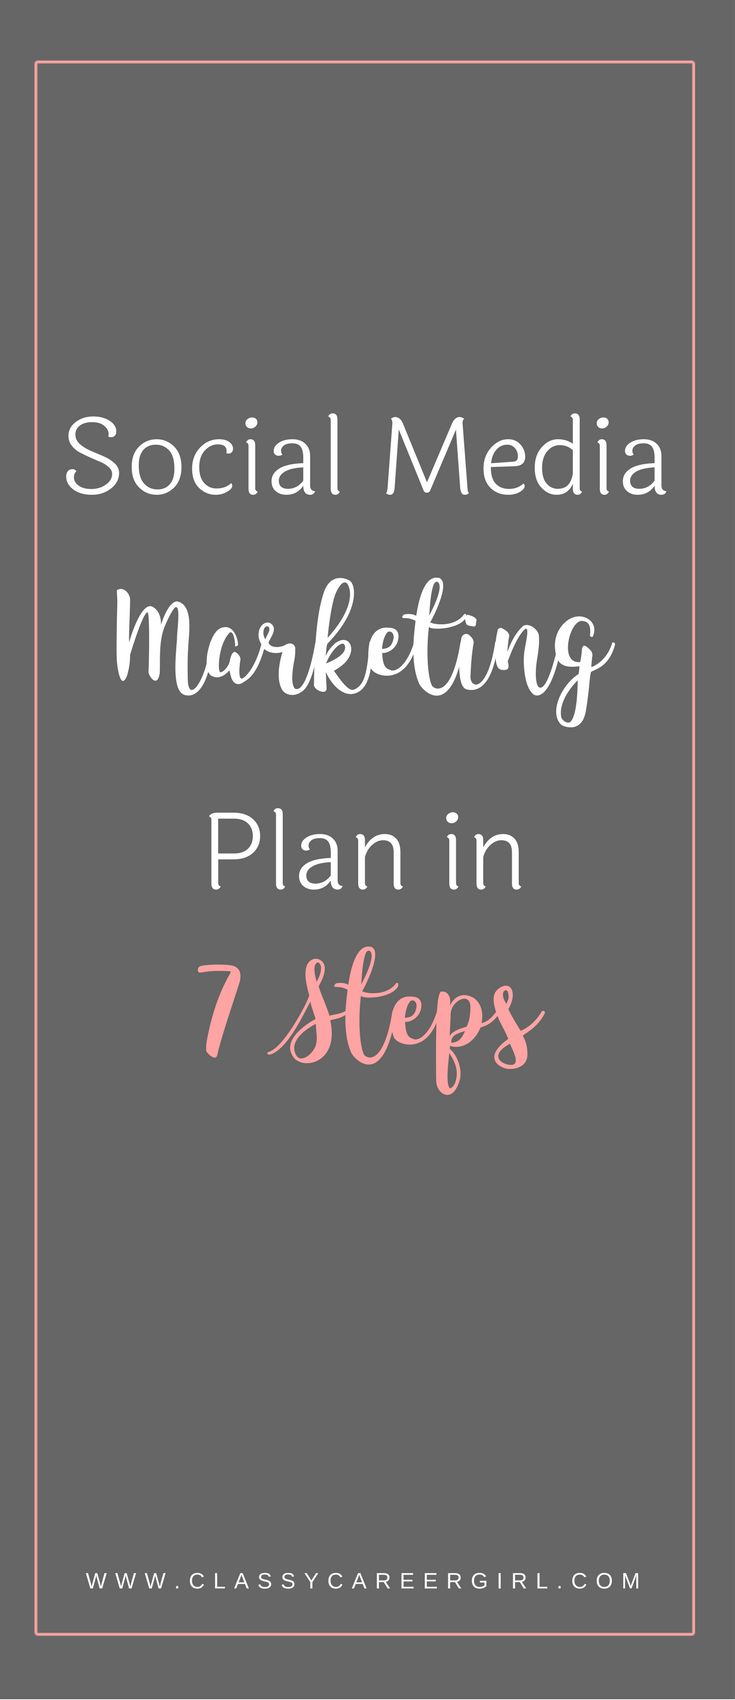 The key to creating your social media marketing plan is to remember that it's not just about posting content everywhere, but instead to be strategic